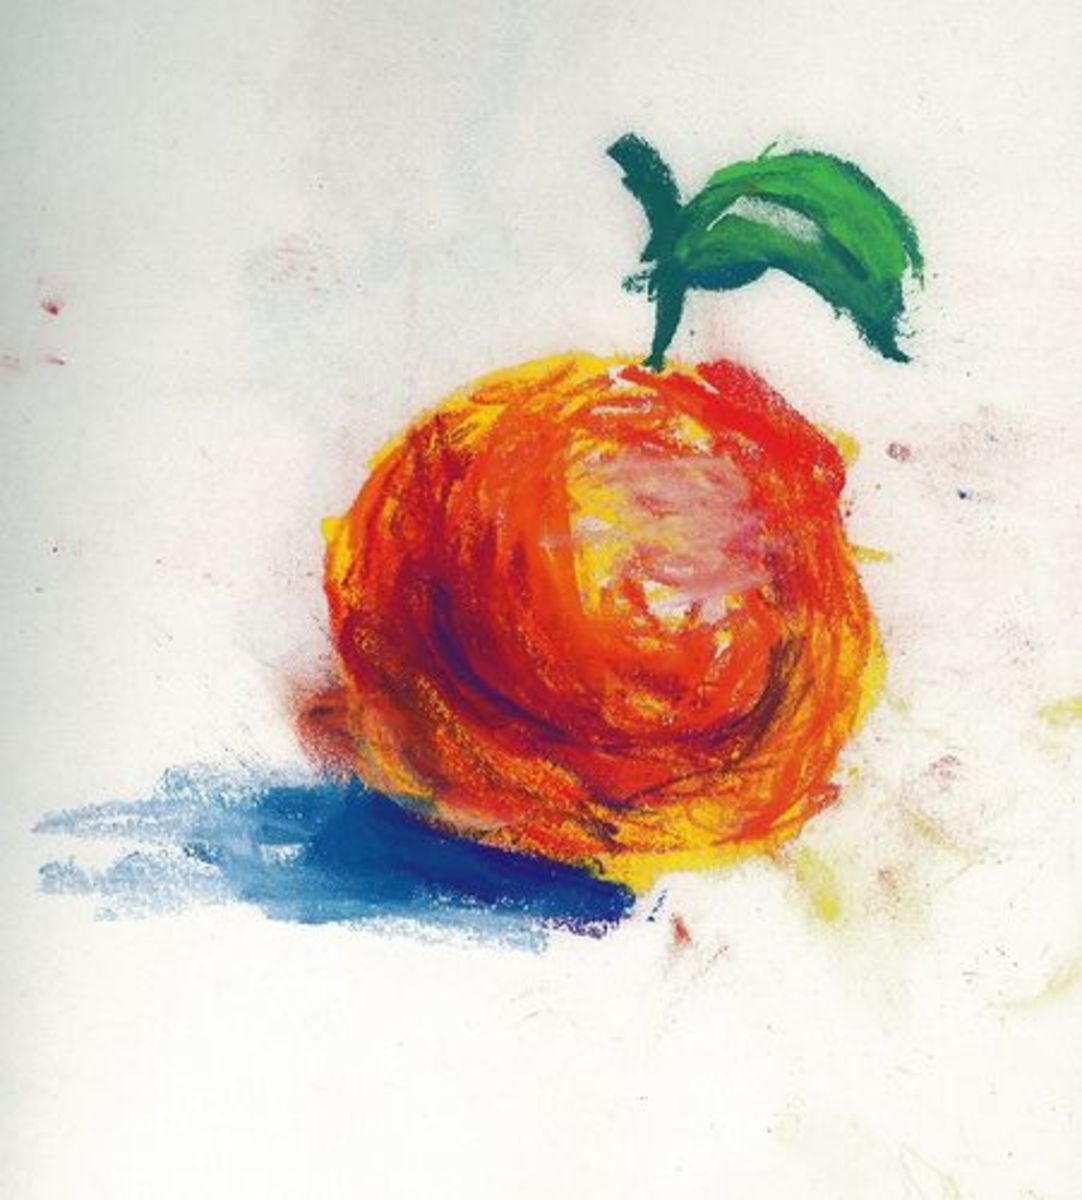 Using pastels is fun...and messy!